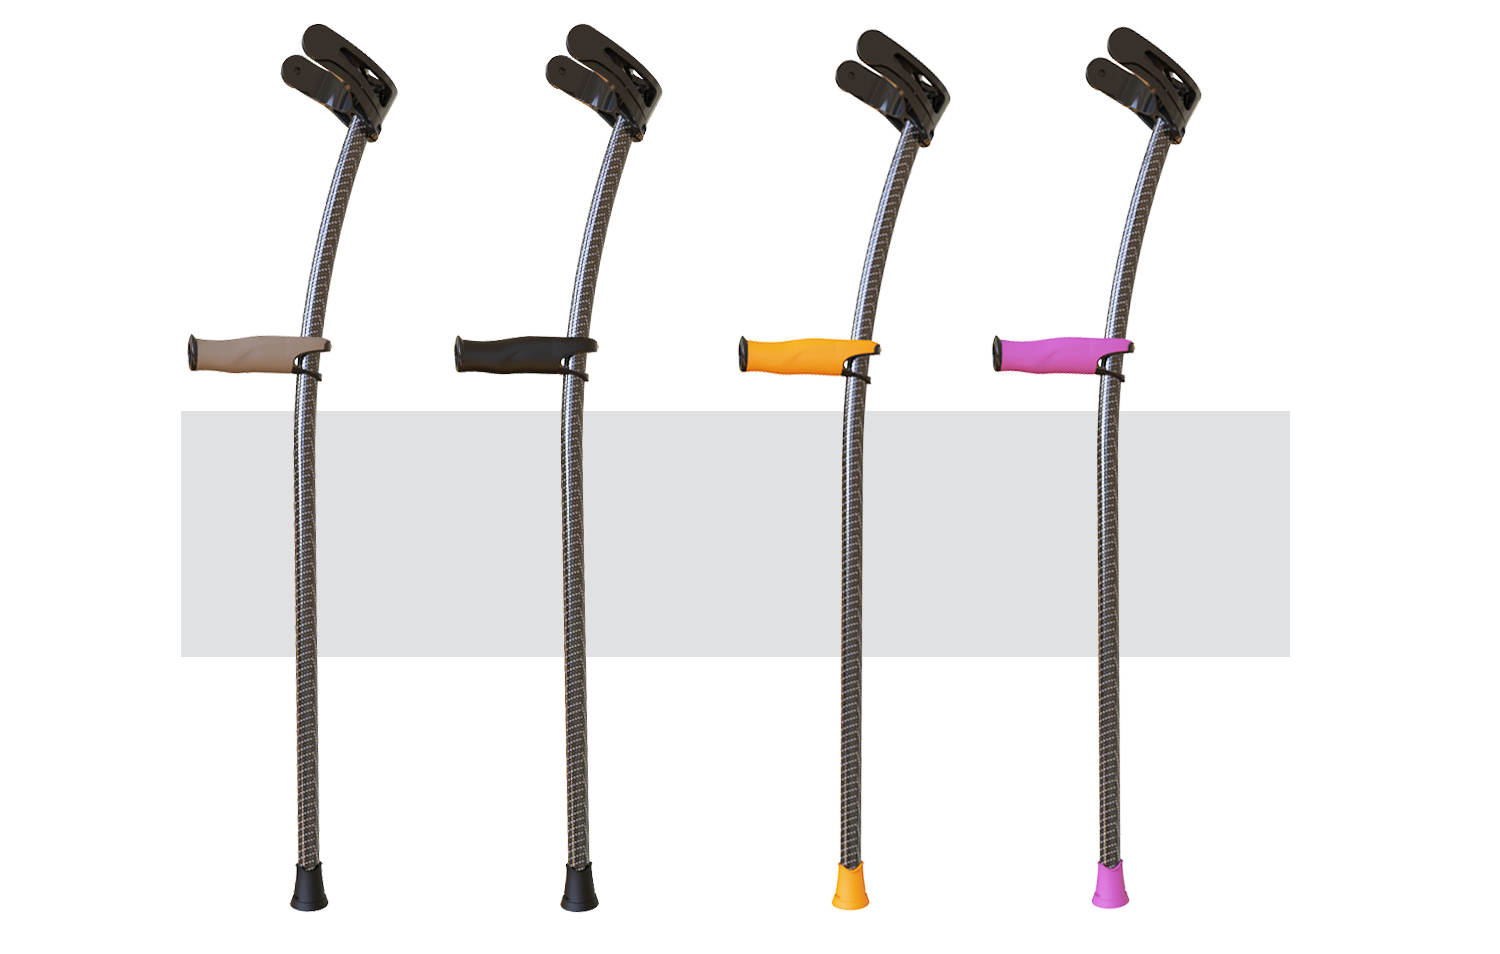 The Lightest Crutches in the World